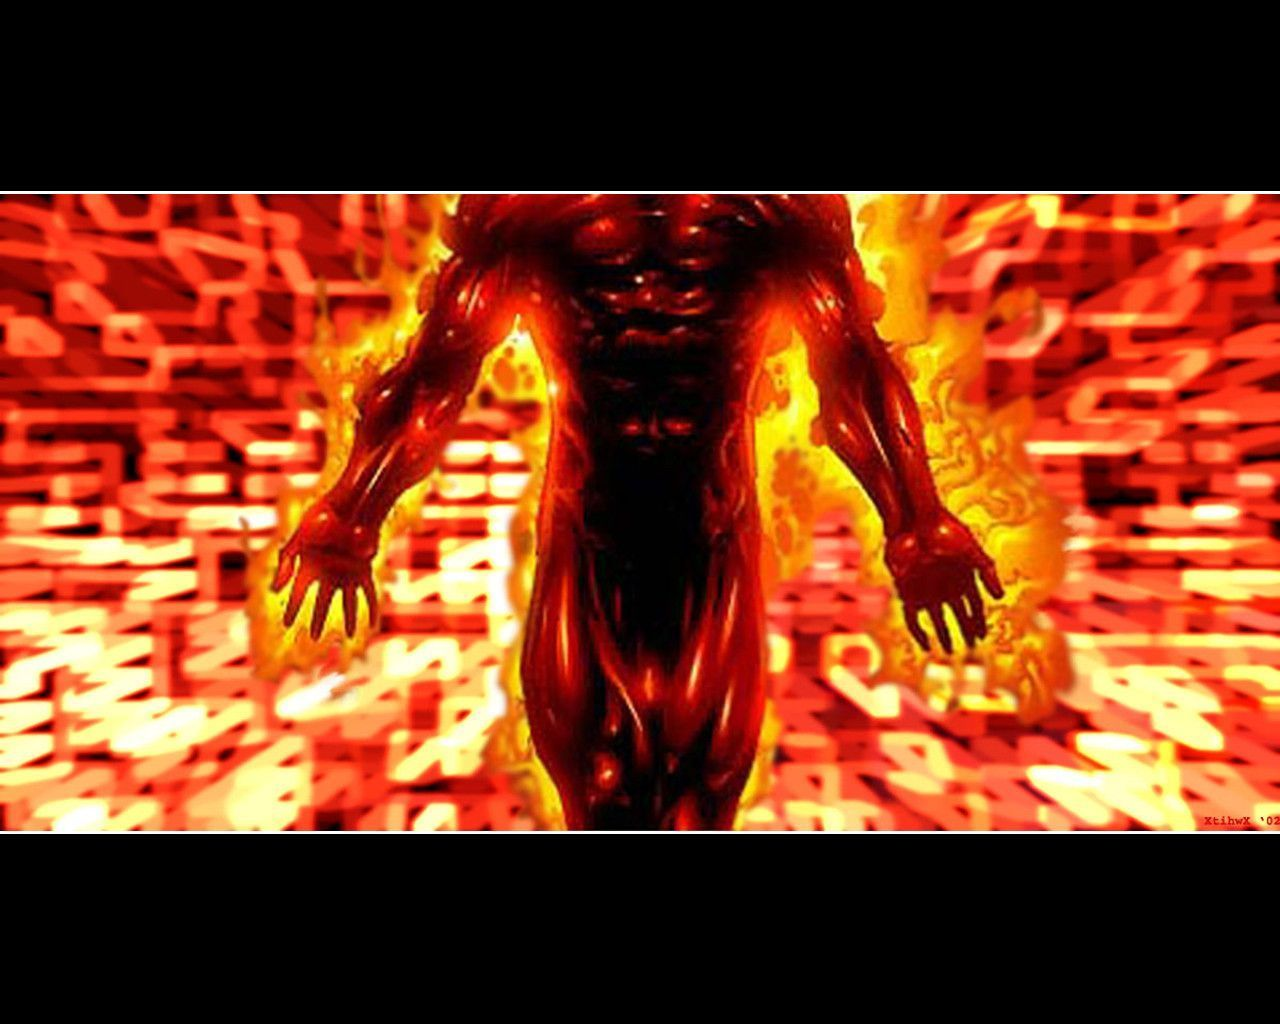 Headless Human Torch Wallpaper by xtihwx 1280x1024